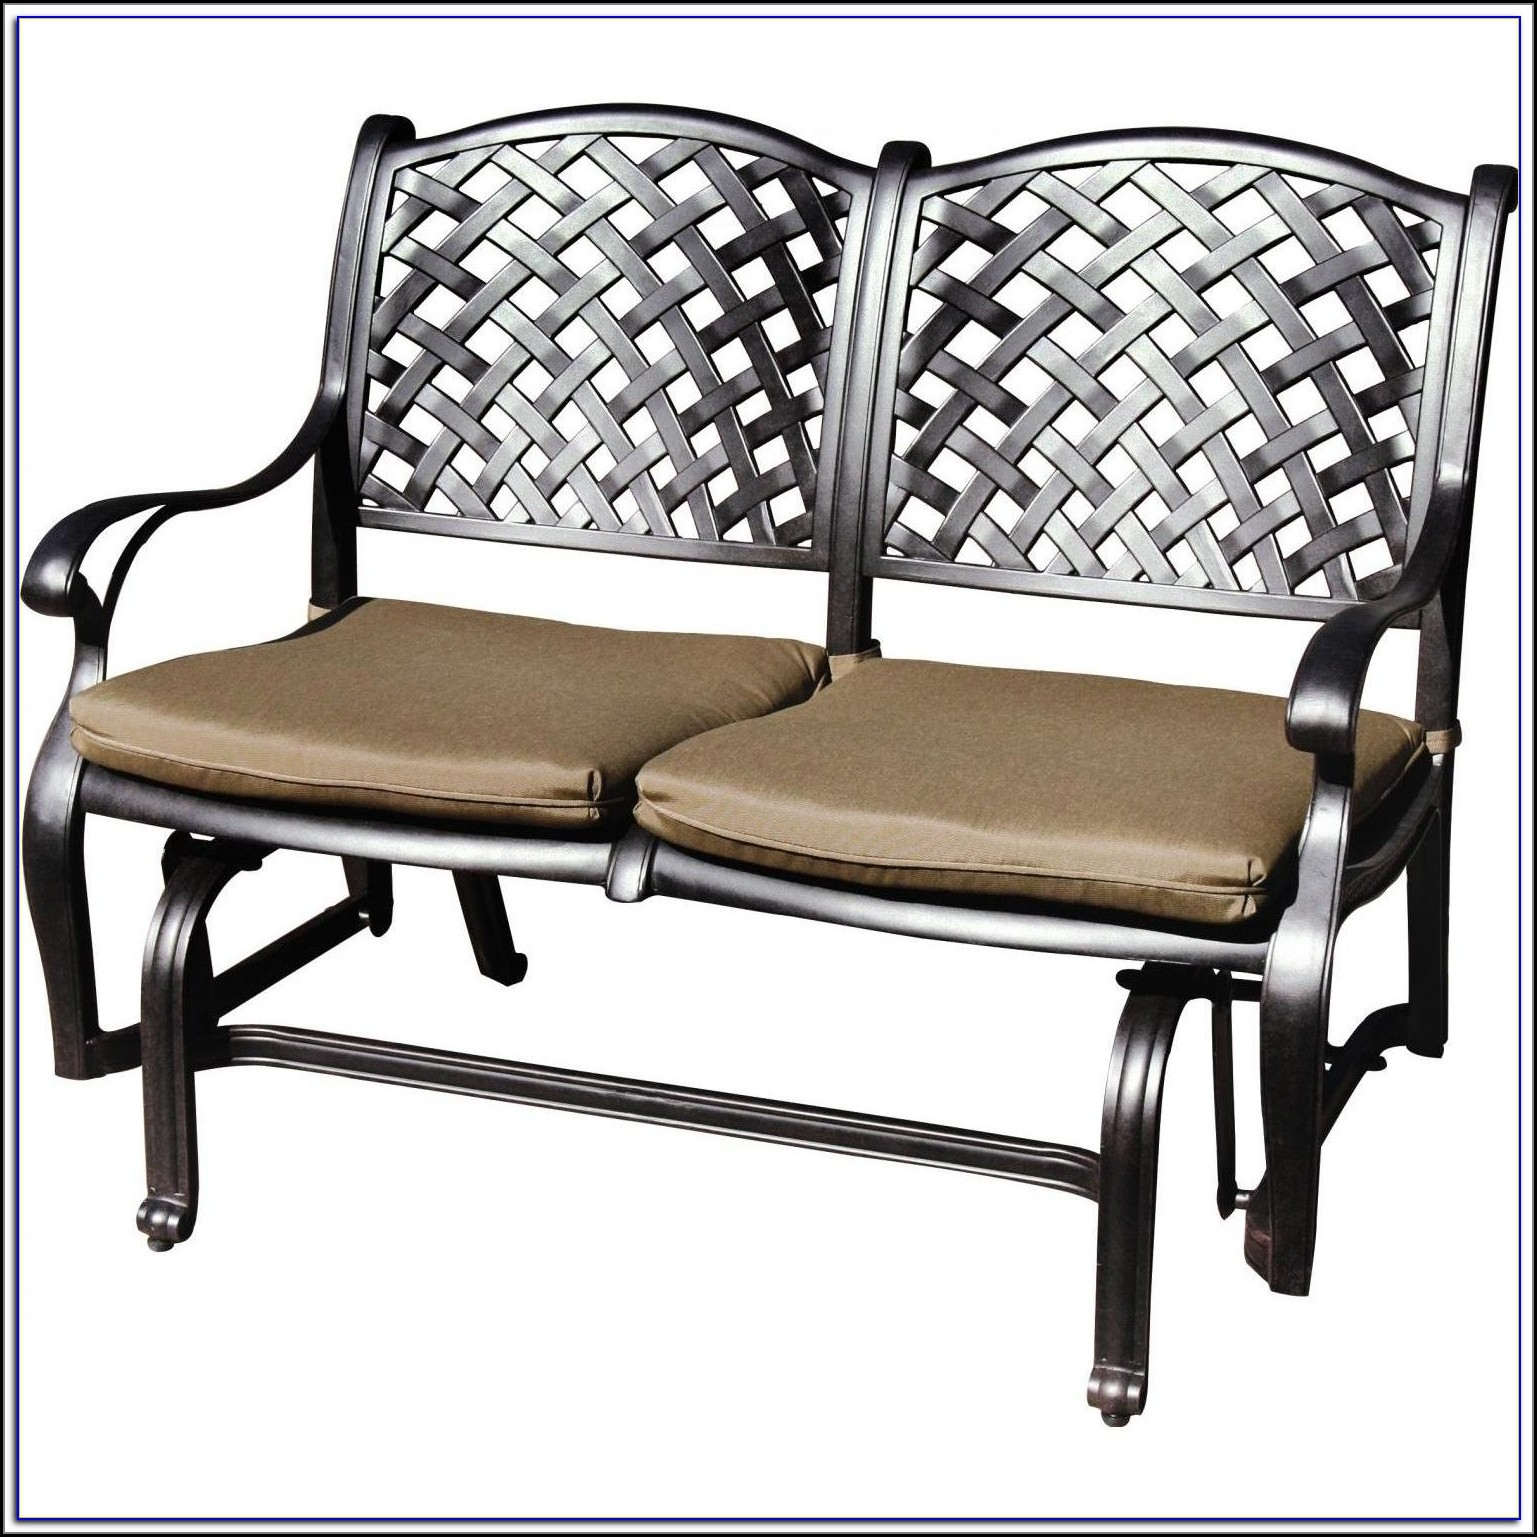 Patio Glider Bench Cushions